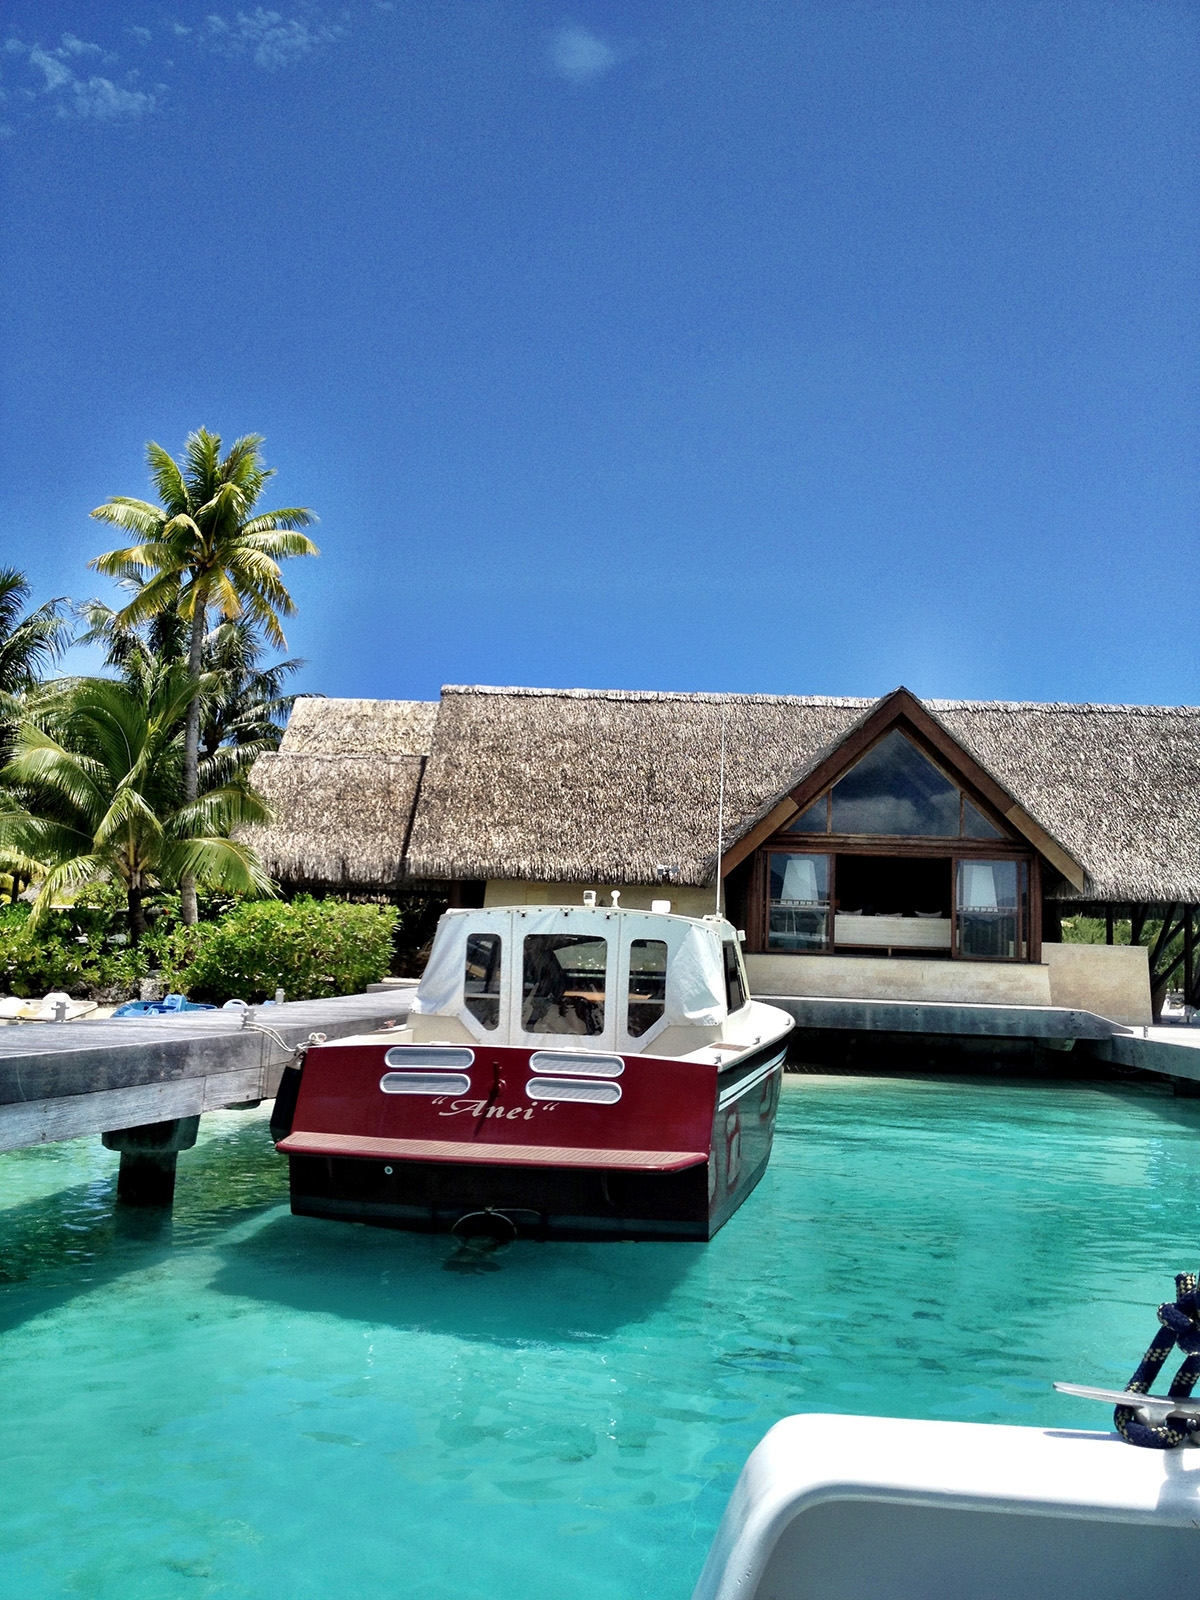 A large red and white boat sits moored in the clear sea alongside an ocean villa